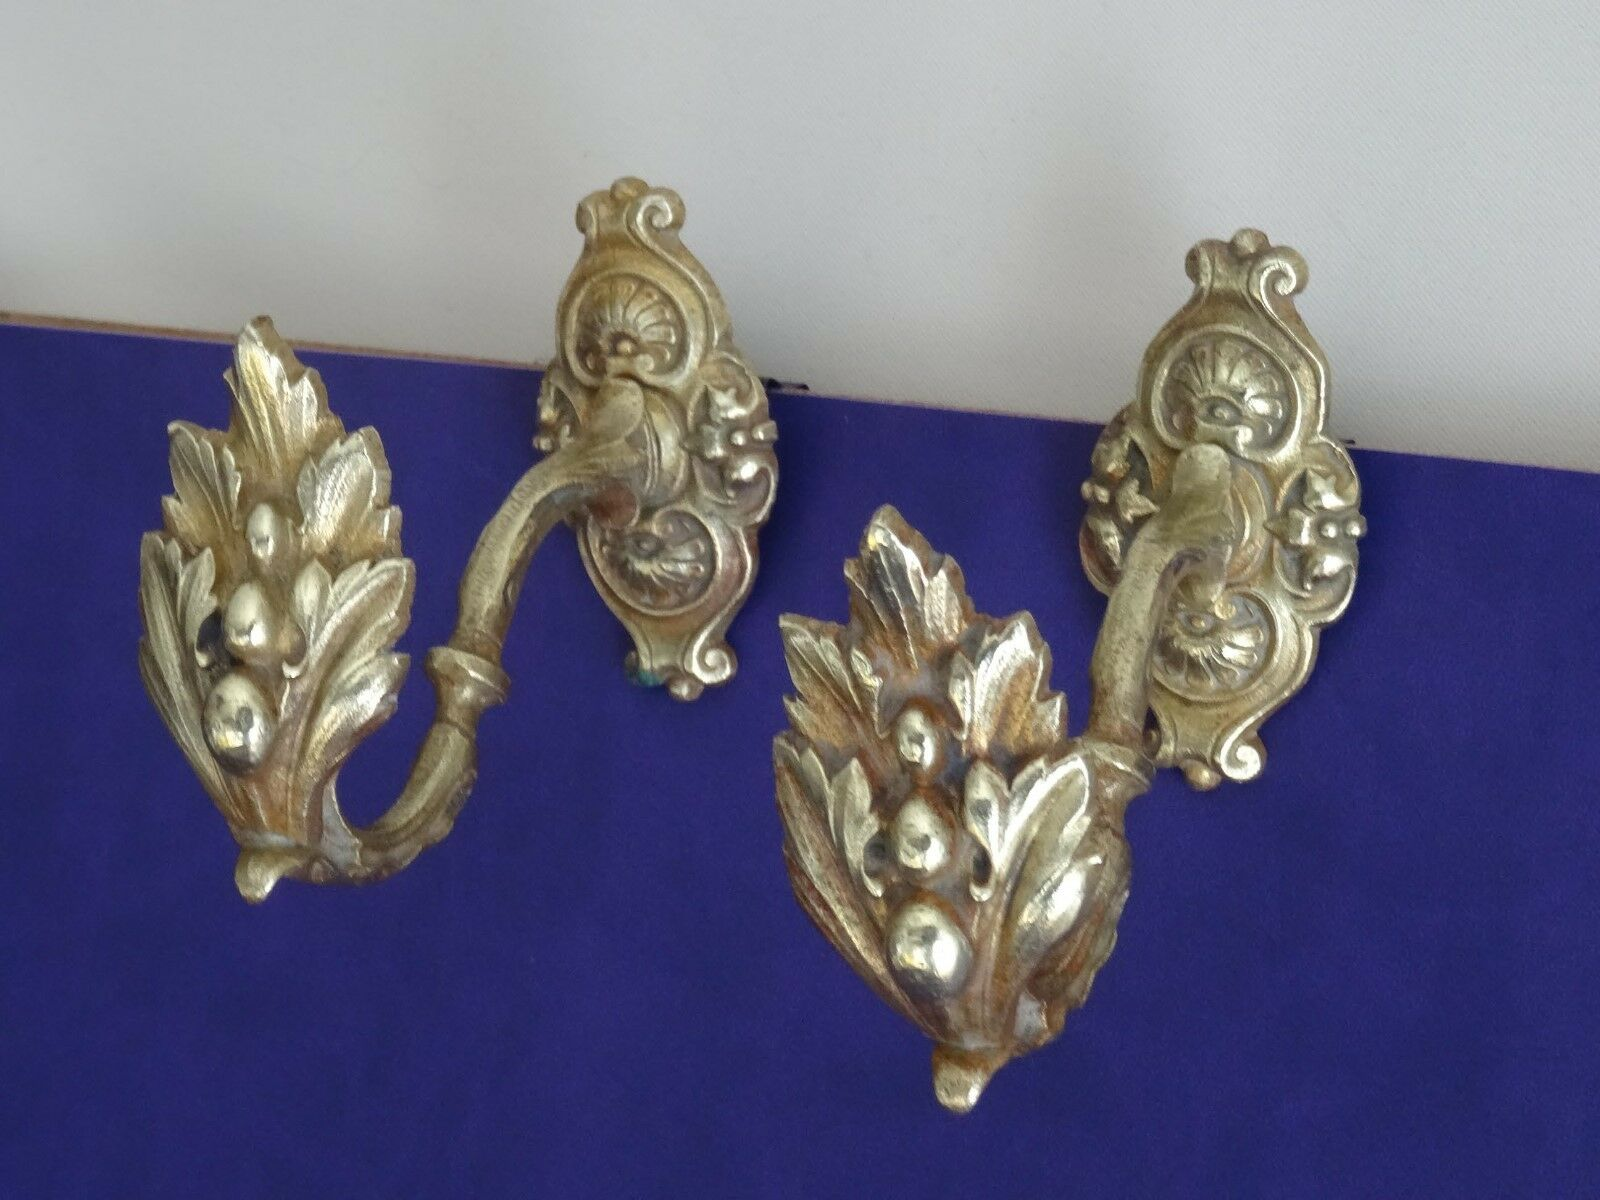 French Antique Brass Curtain Tie-Backs/Hooks – Vintage Hardware